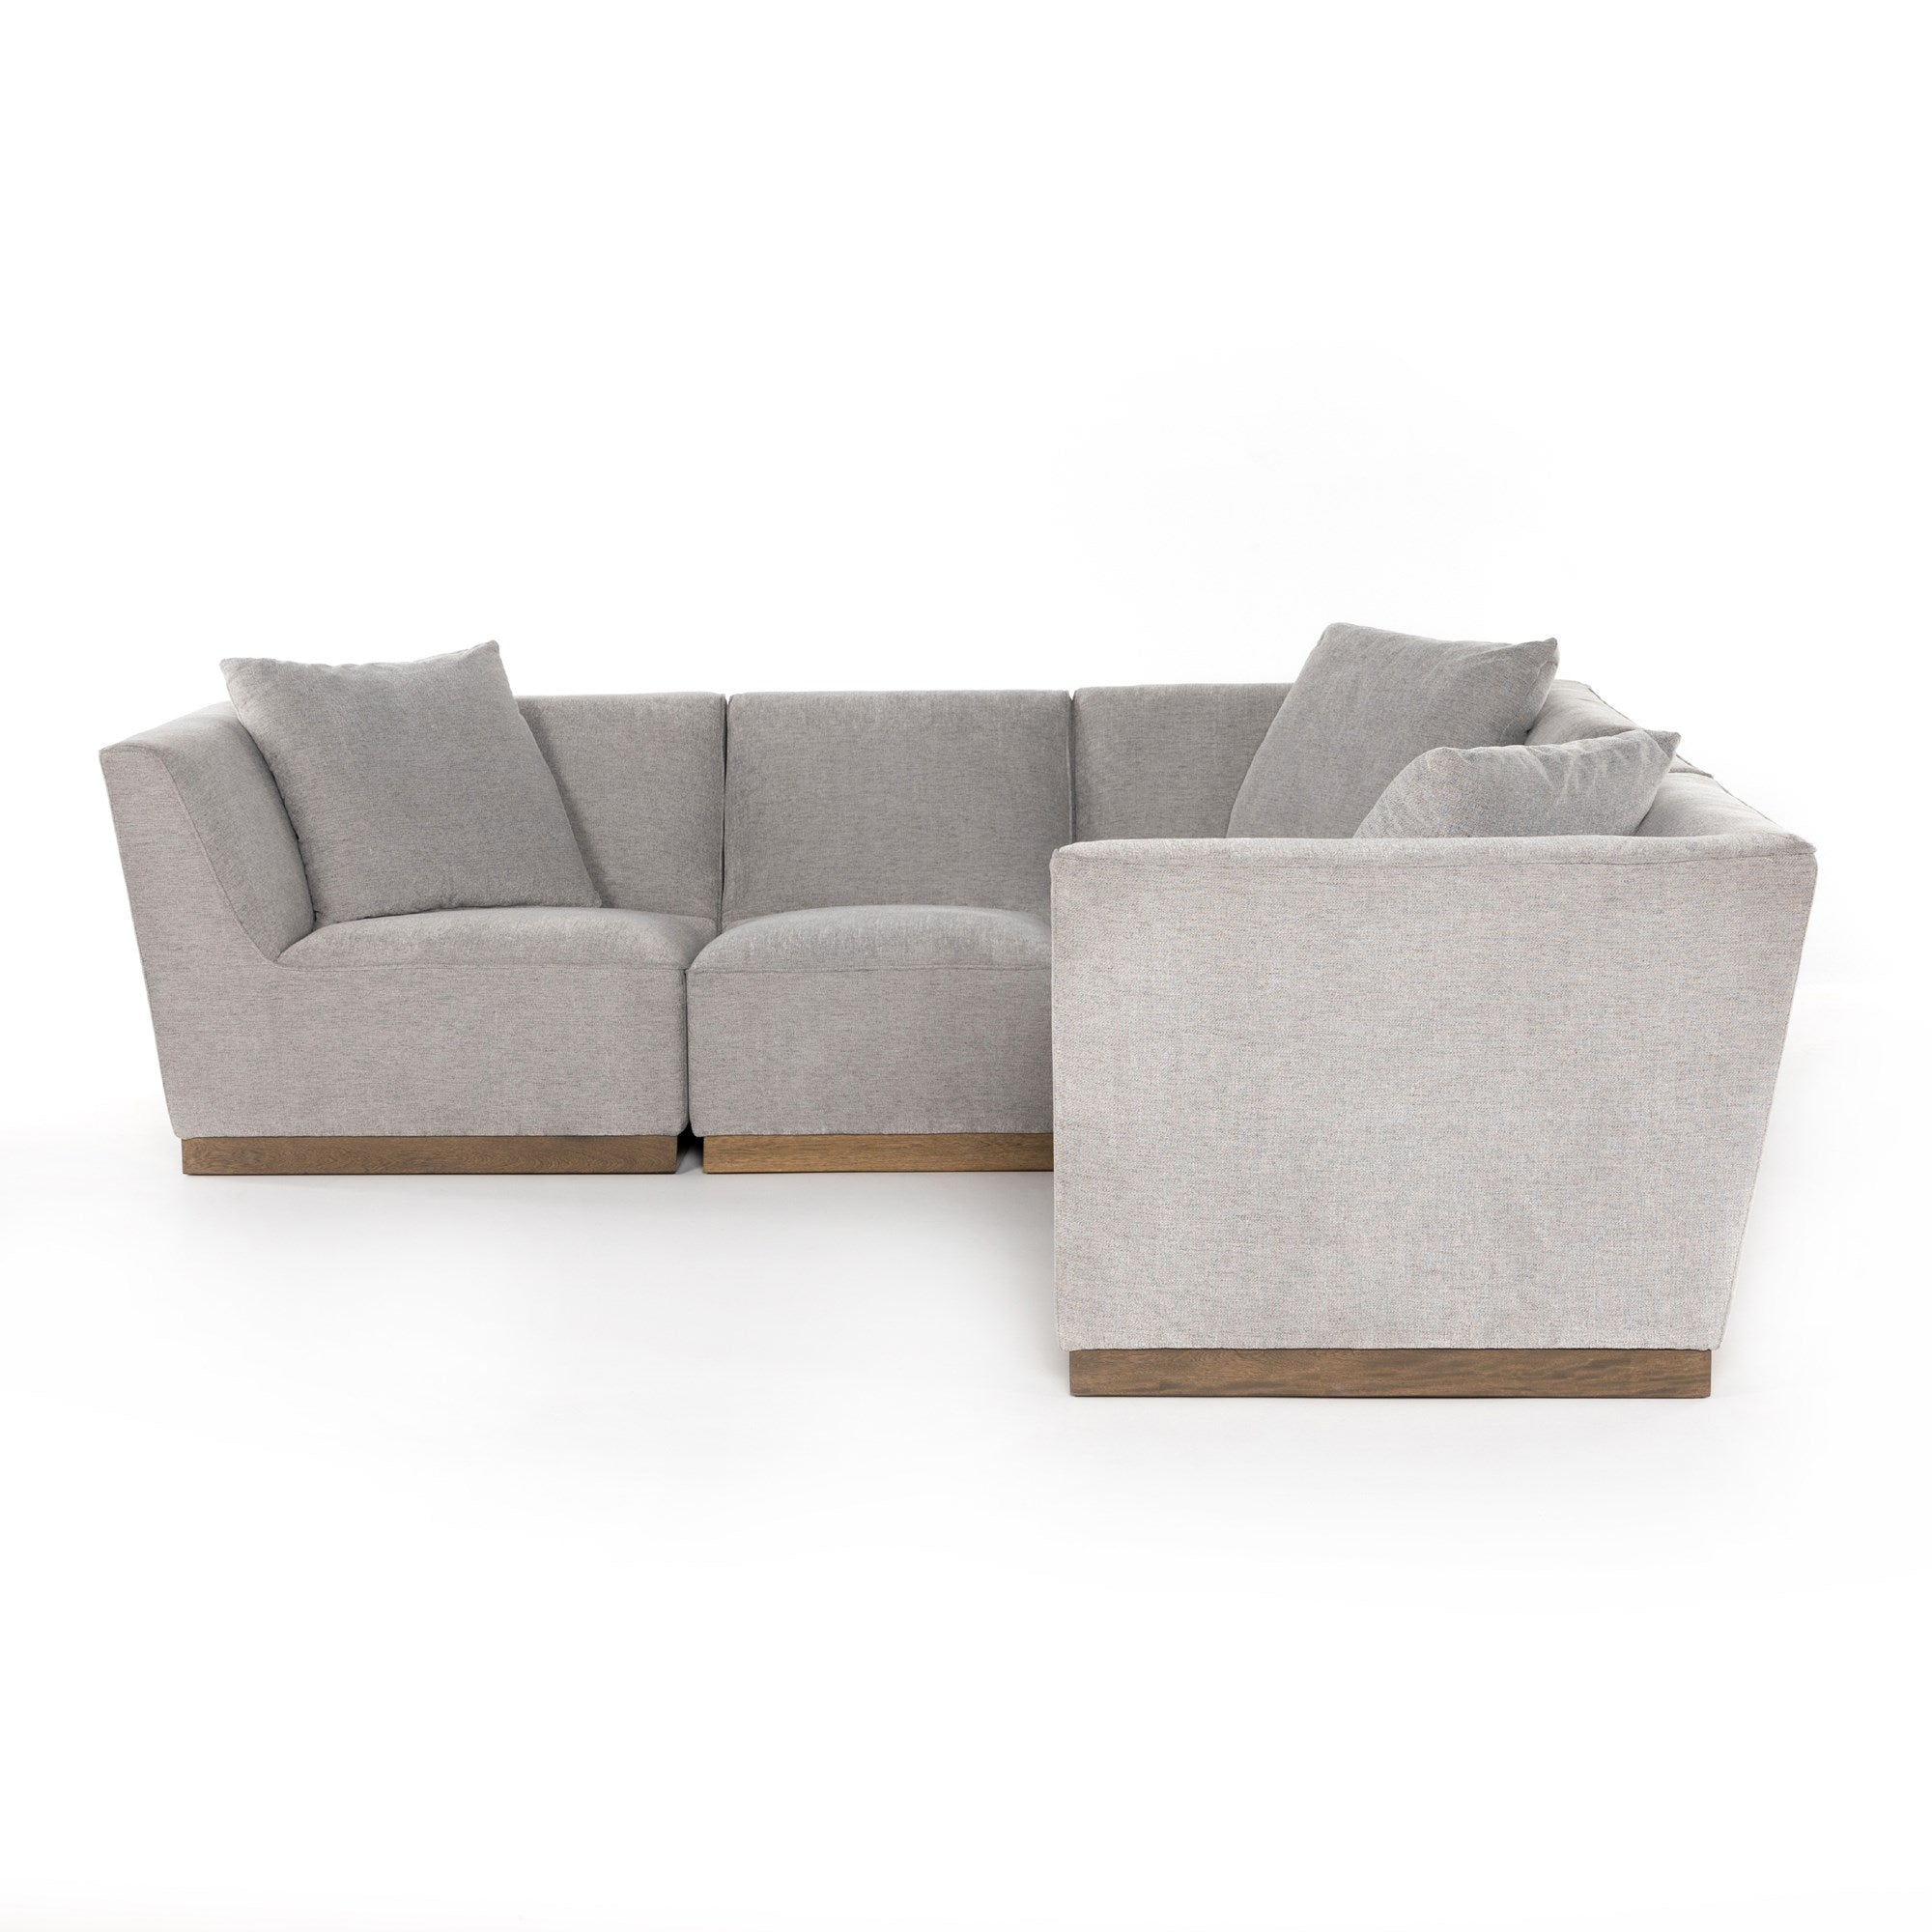 Gentry 5 Piece Sectional